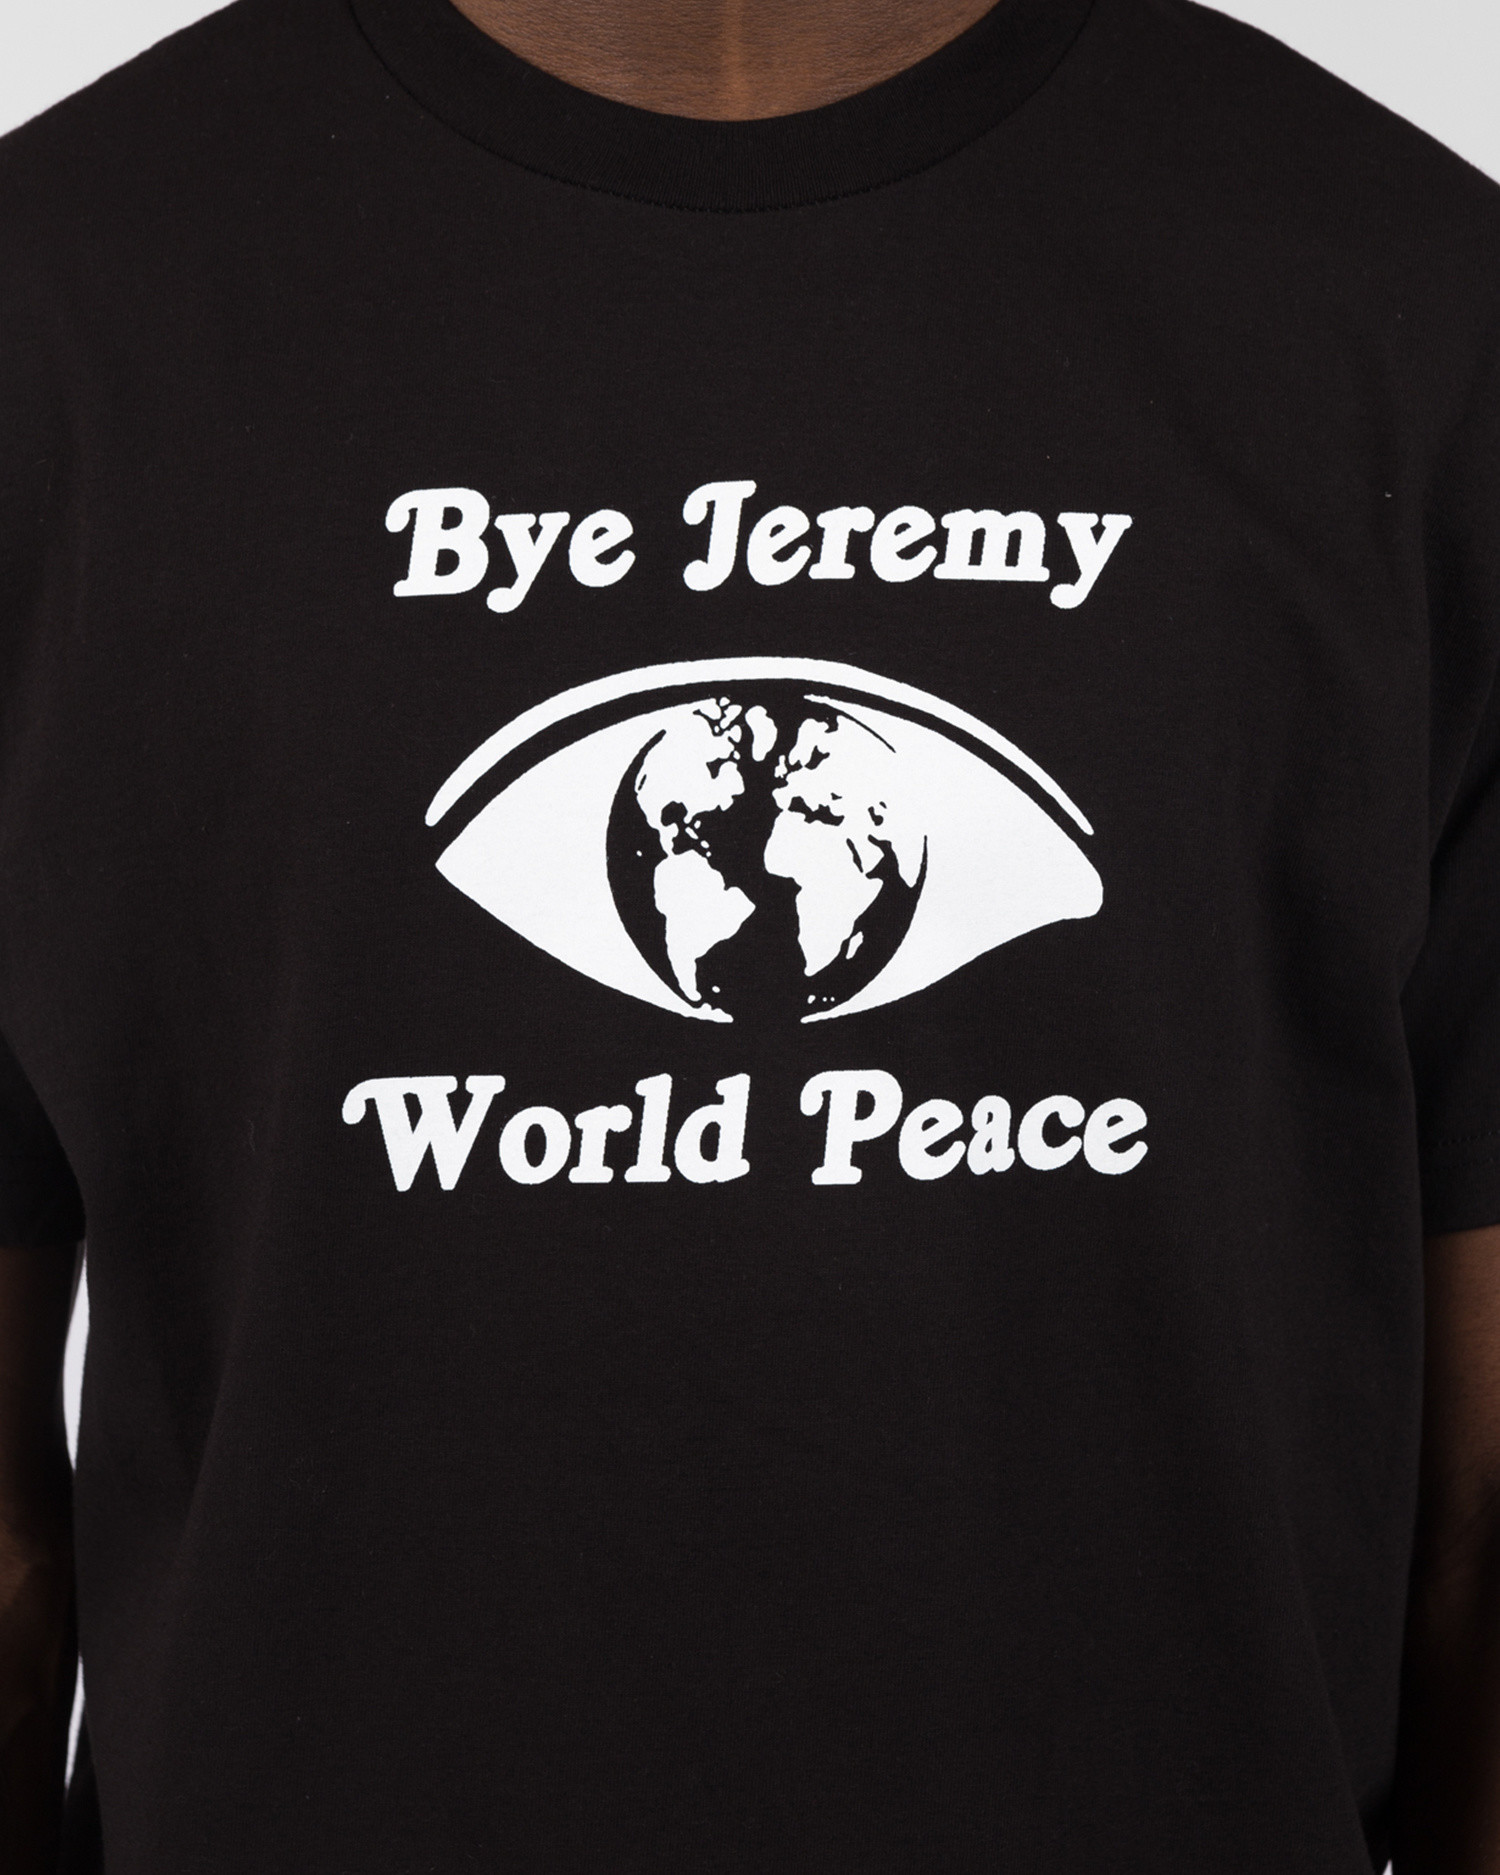 Bye Jeremy Black World Peace T-shirt